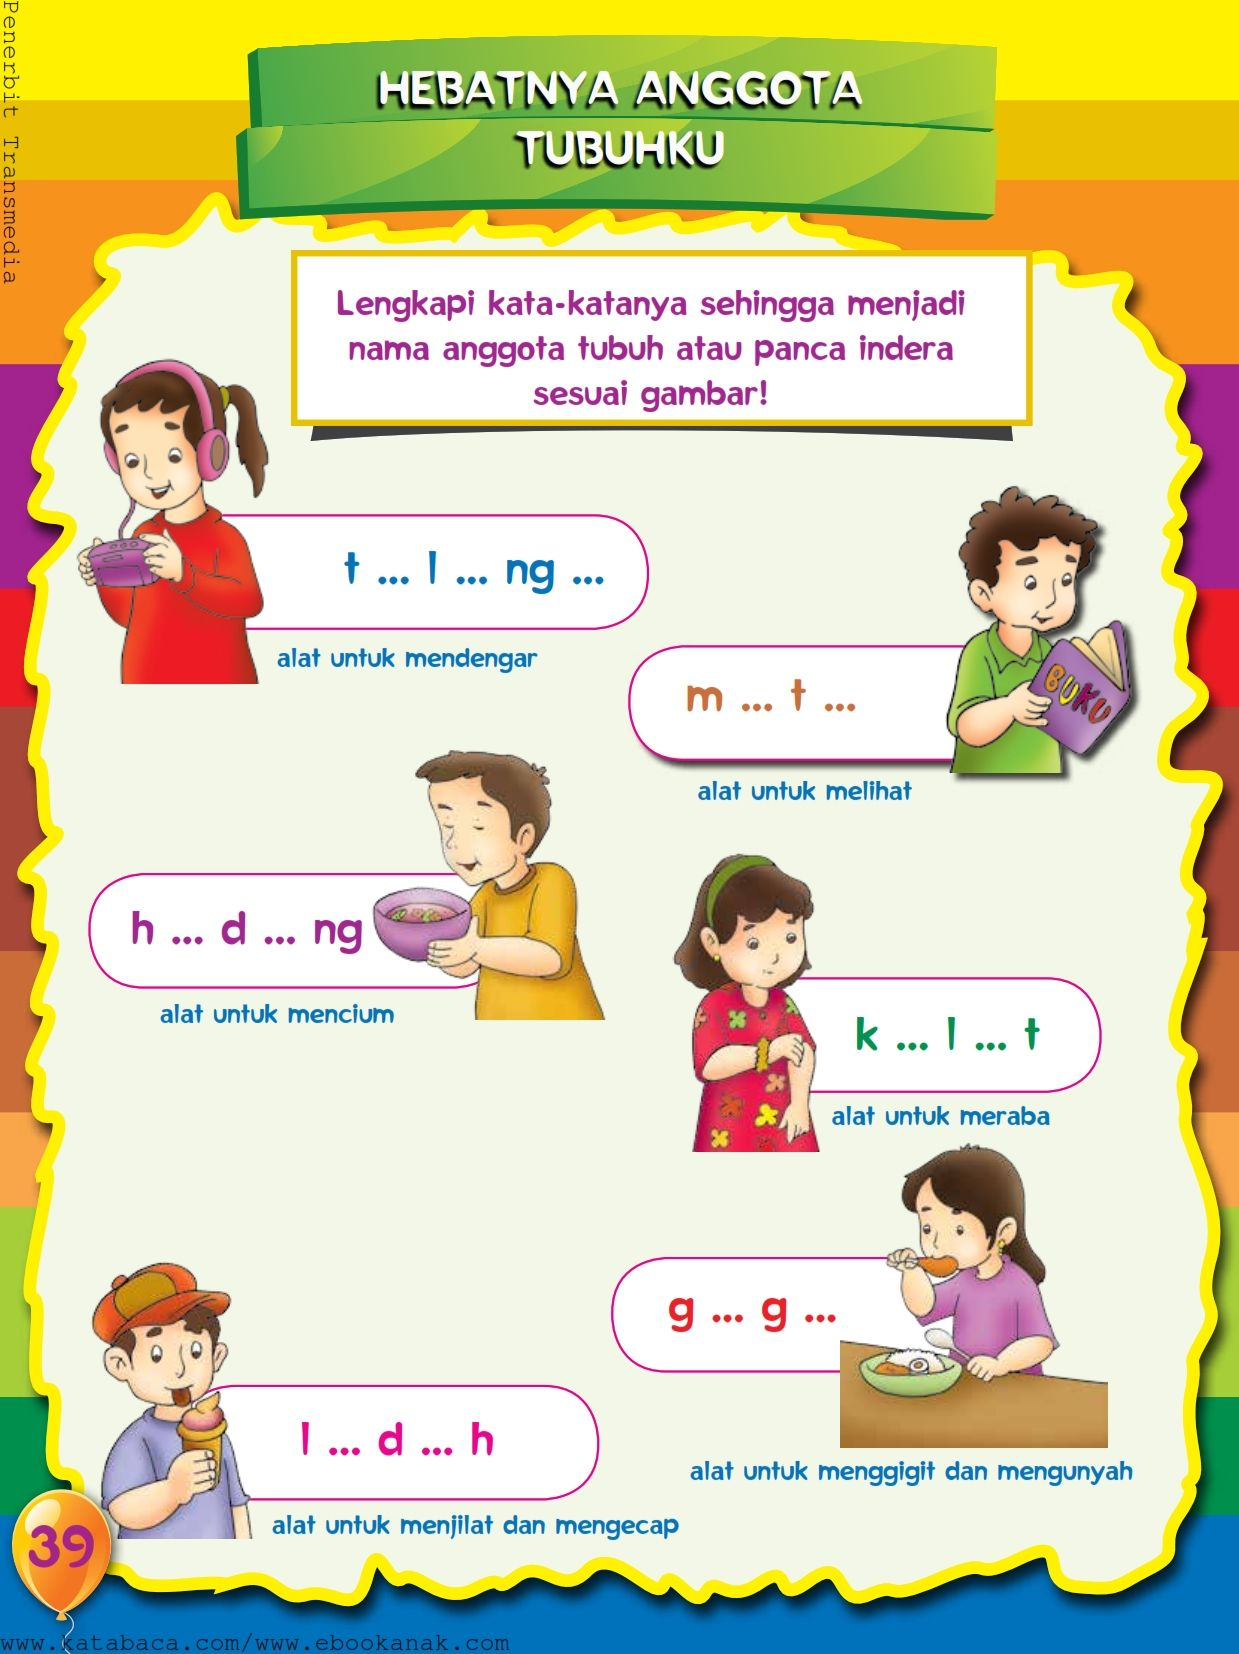 Worksheet Religi Anak Tk Printable Worksheets And Activities For Teachers Parents Tutors And Homeschool Families